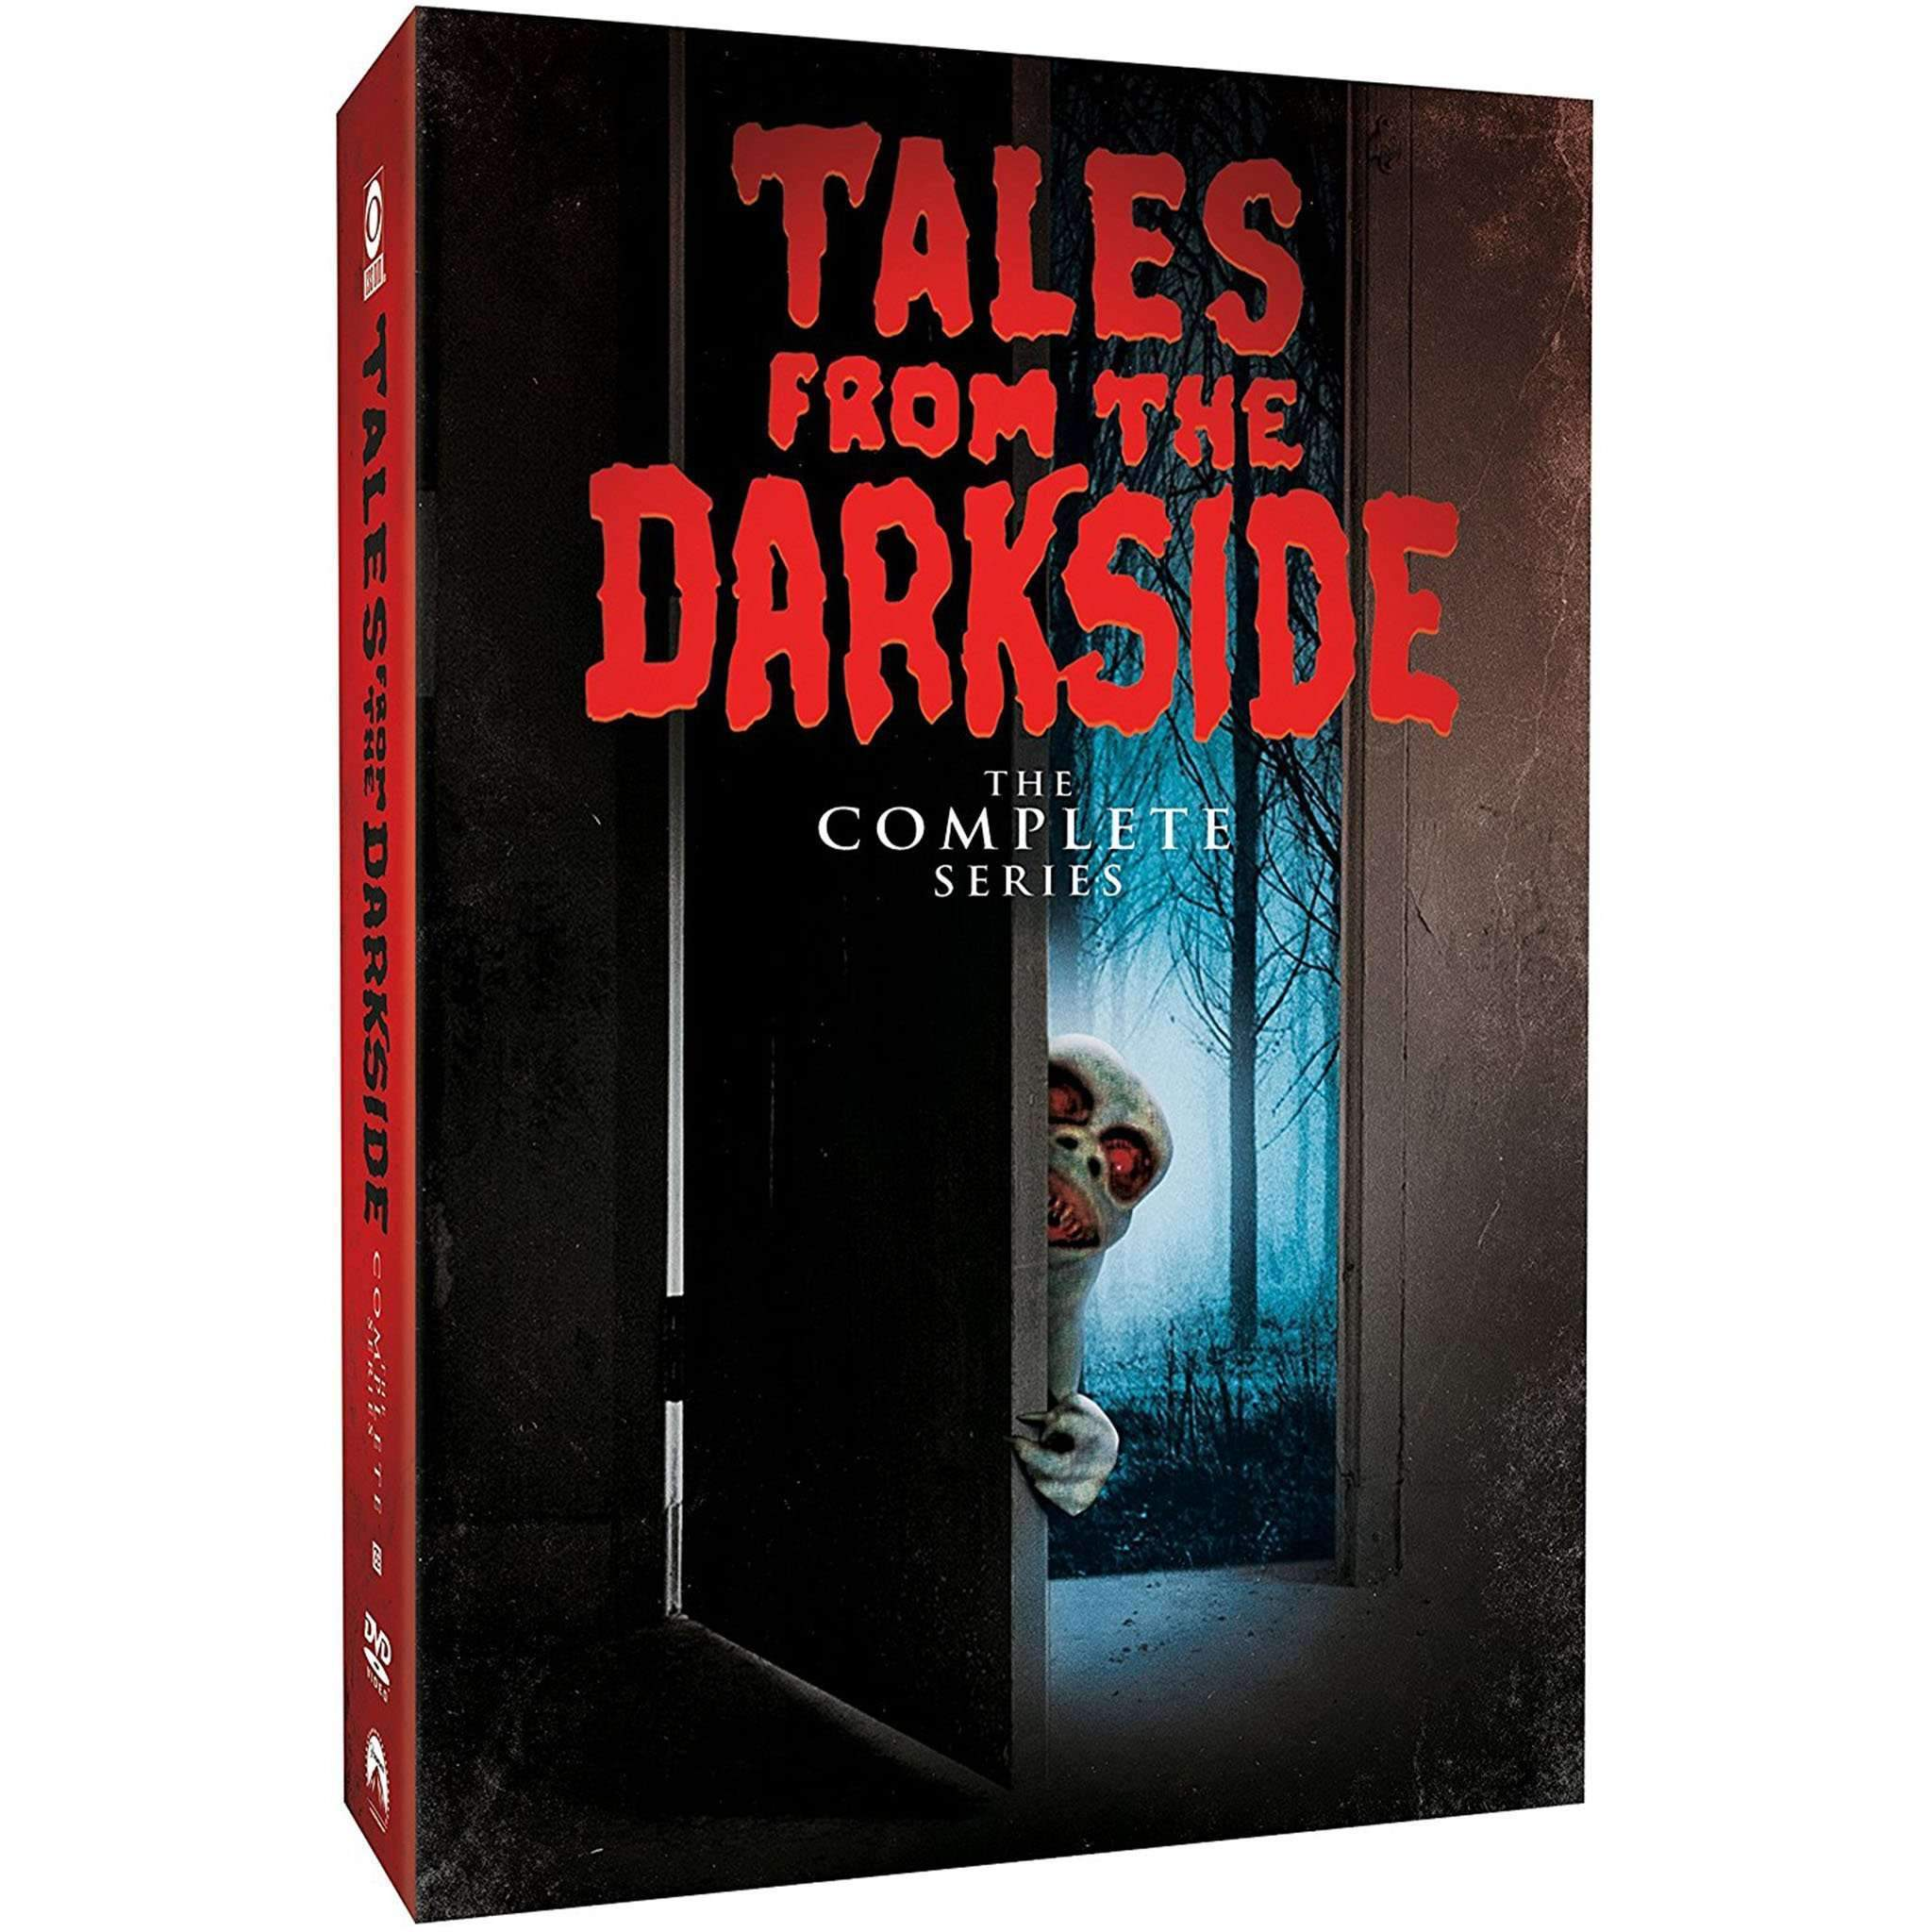 Tales From the Darkside DVD Complete Series Box Set Paramount Home Entertainment DVDs & Blu-ray Discs > DVDs > Box Sets